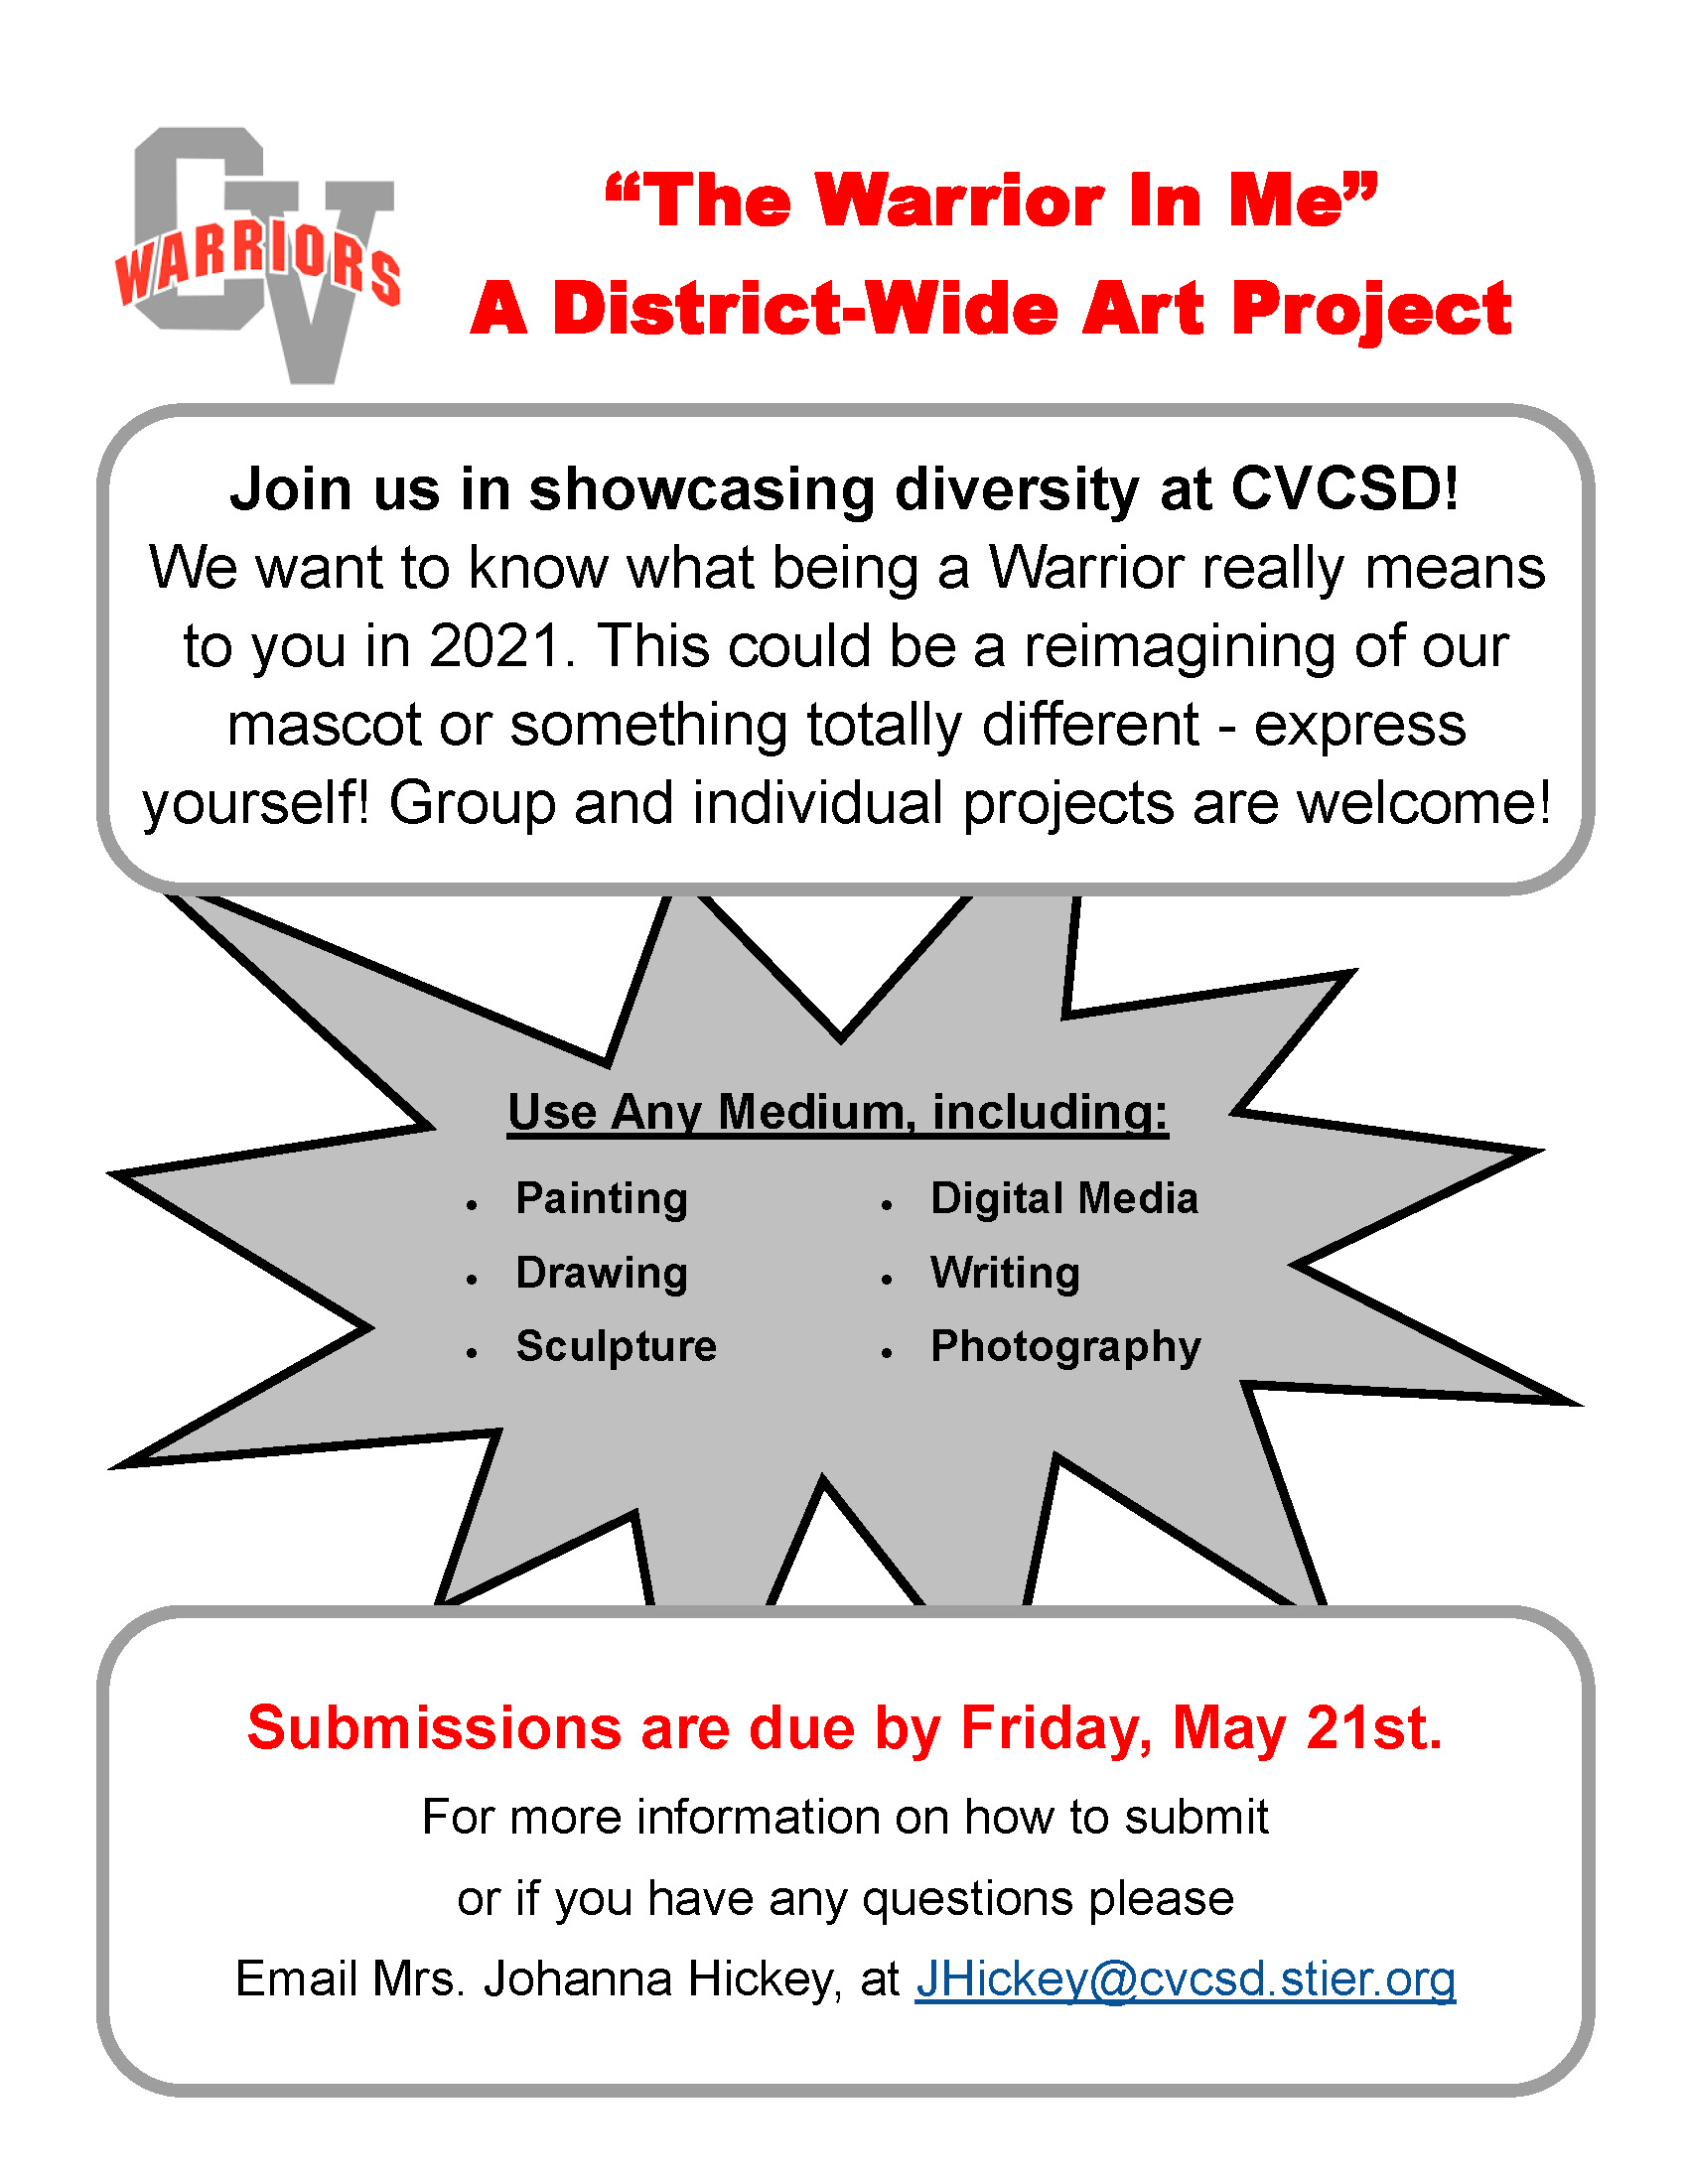 Warrior in Me Art Project Information